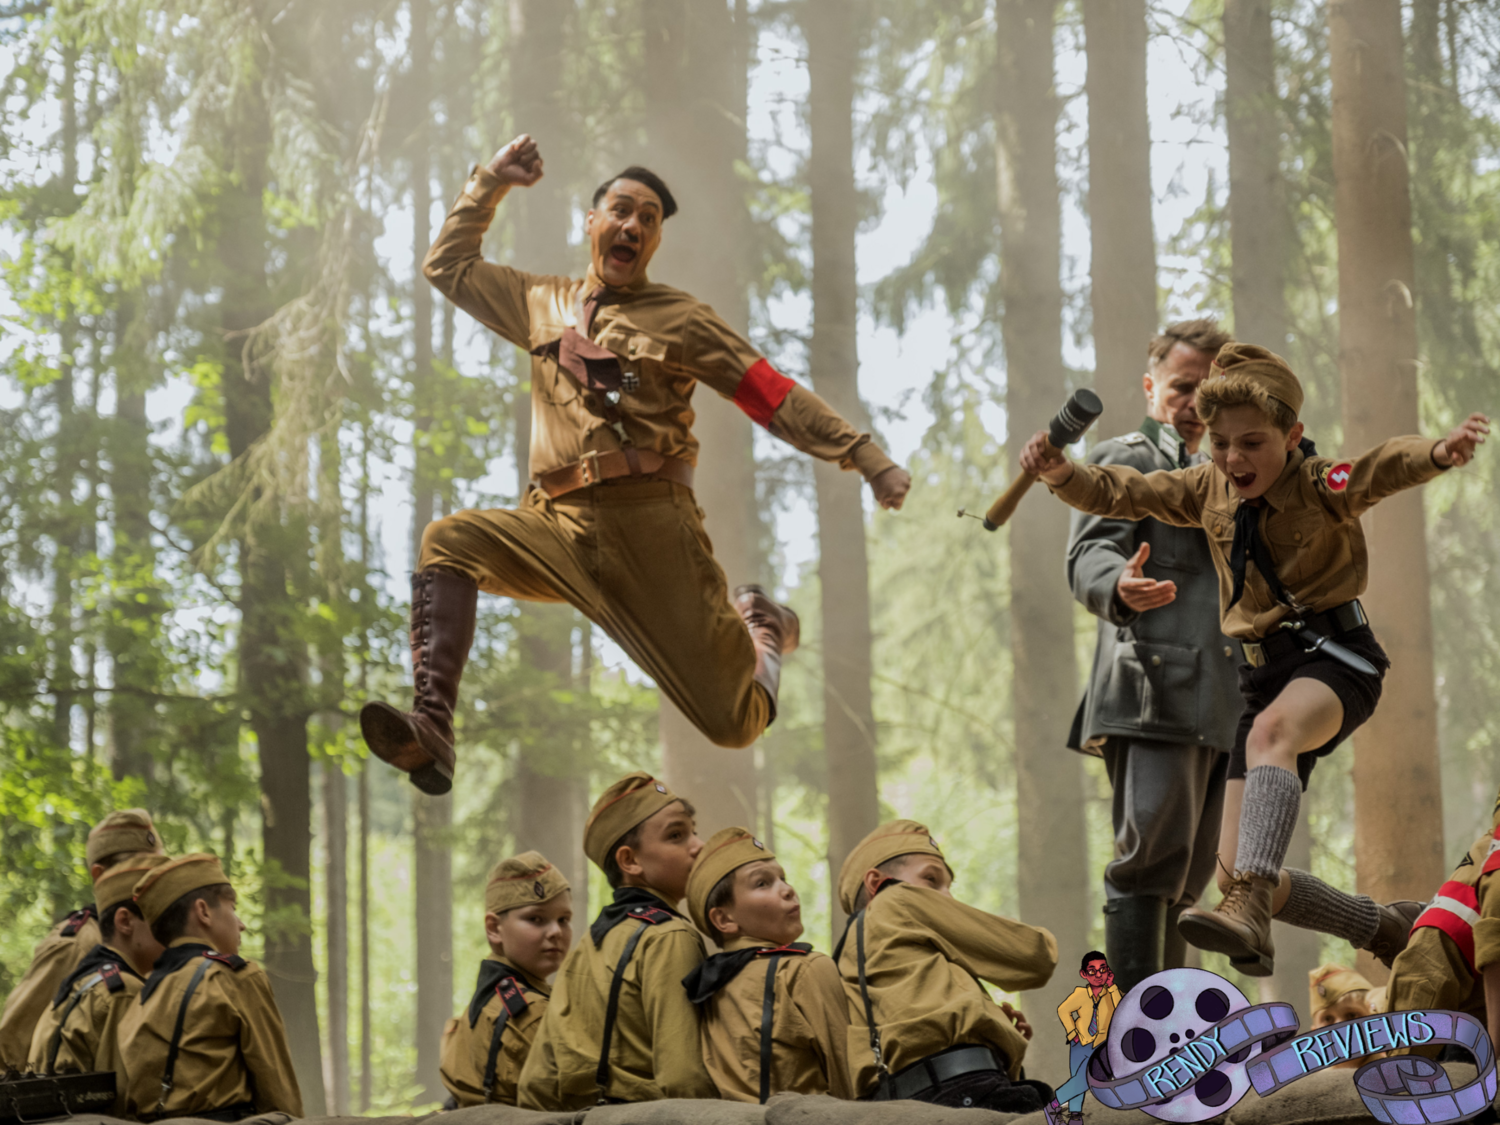 'Jojo Rabbit' Review: Taika Waititi's WWII satire is a vibrant and entertaining ride